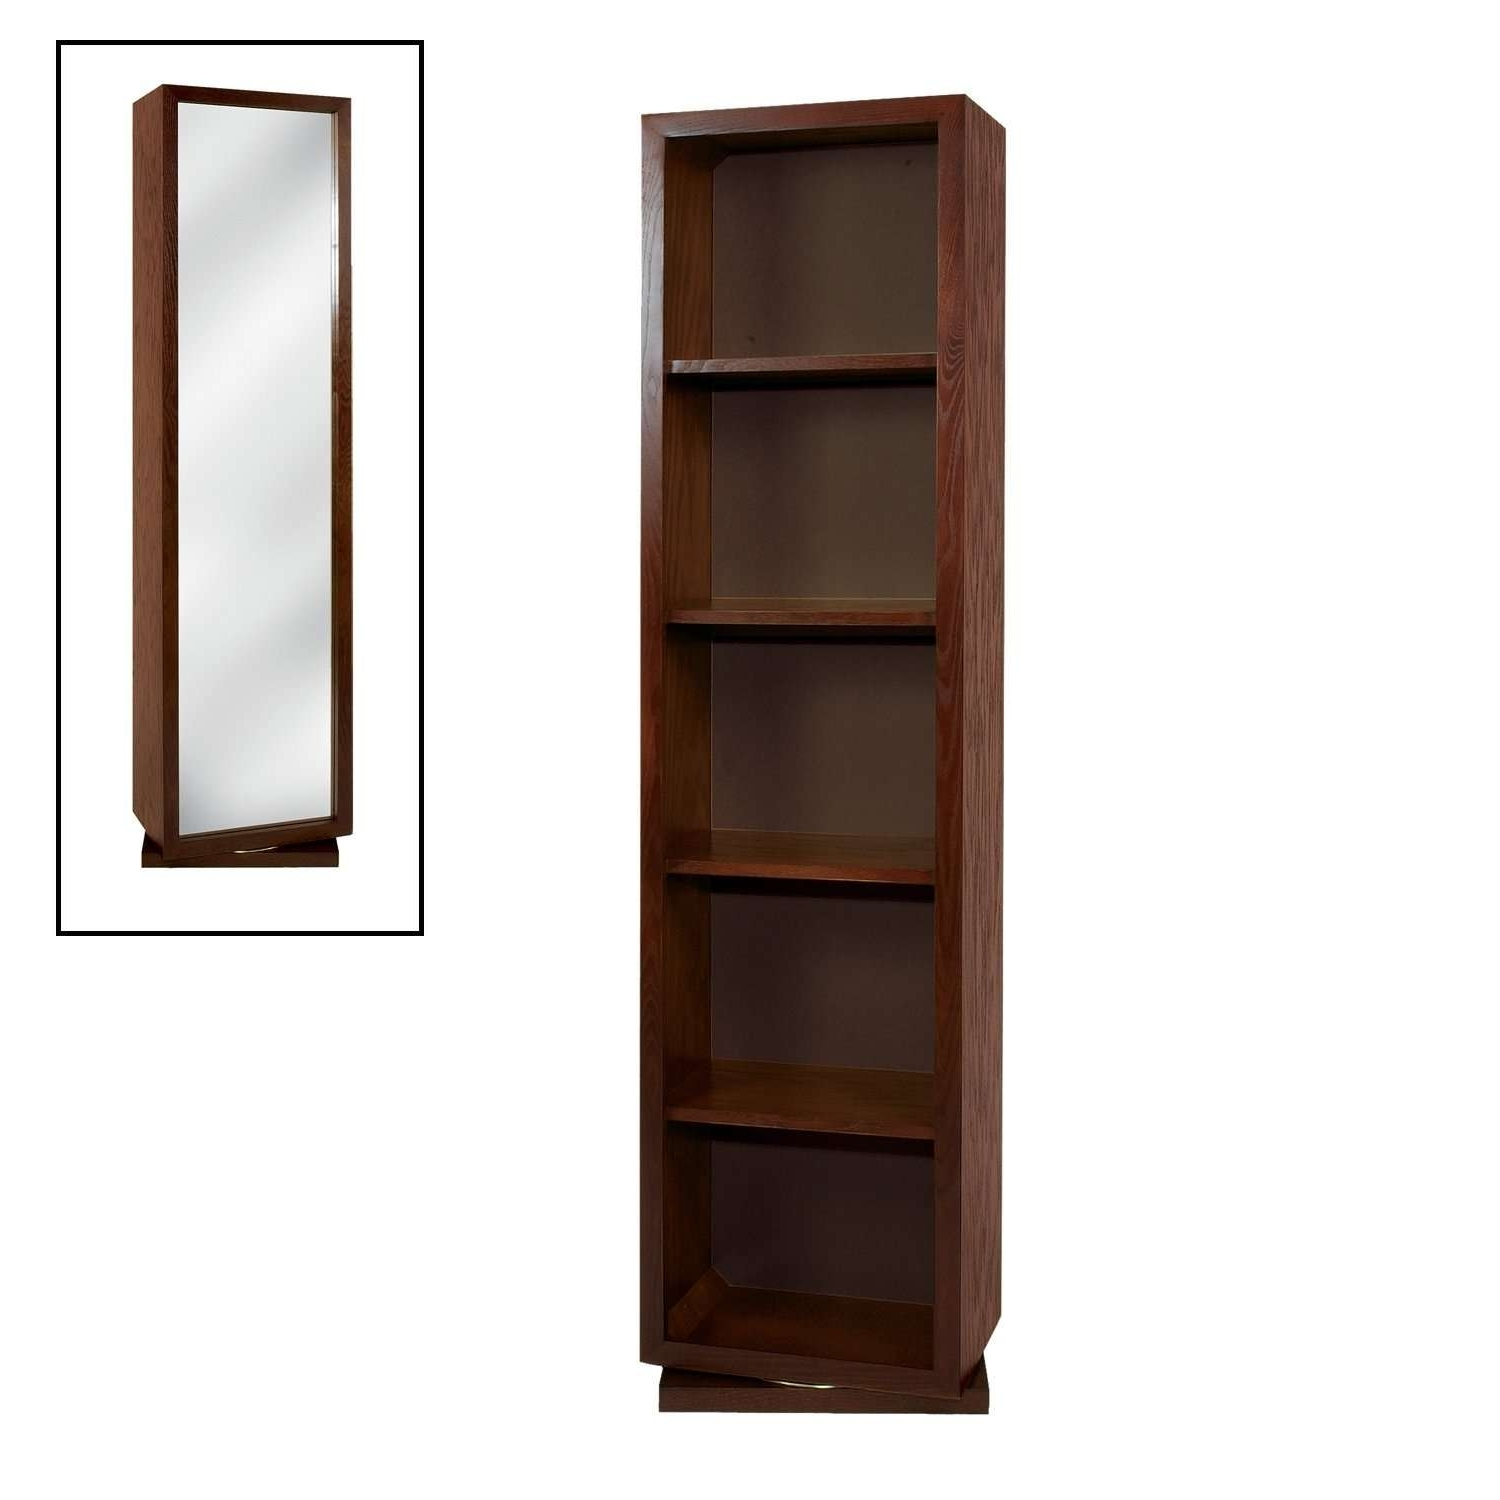 Widely Used Mirrored Bookcase Tall : Doherty House – Mirrored Bookcase Ideas For Mirrored Bookcases (View 2 of 15)